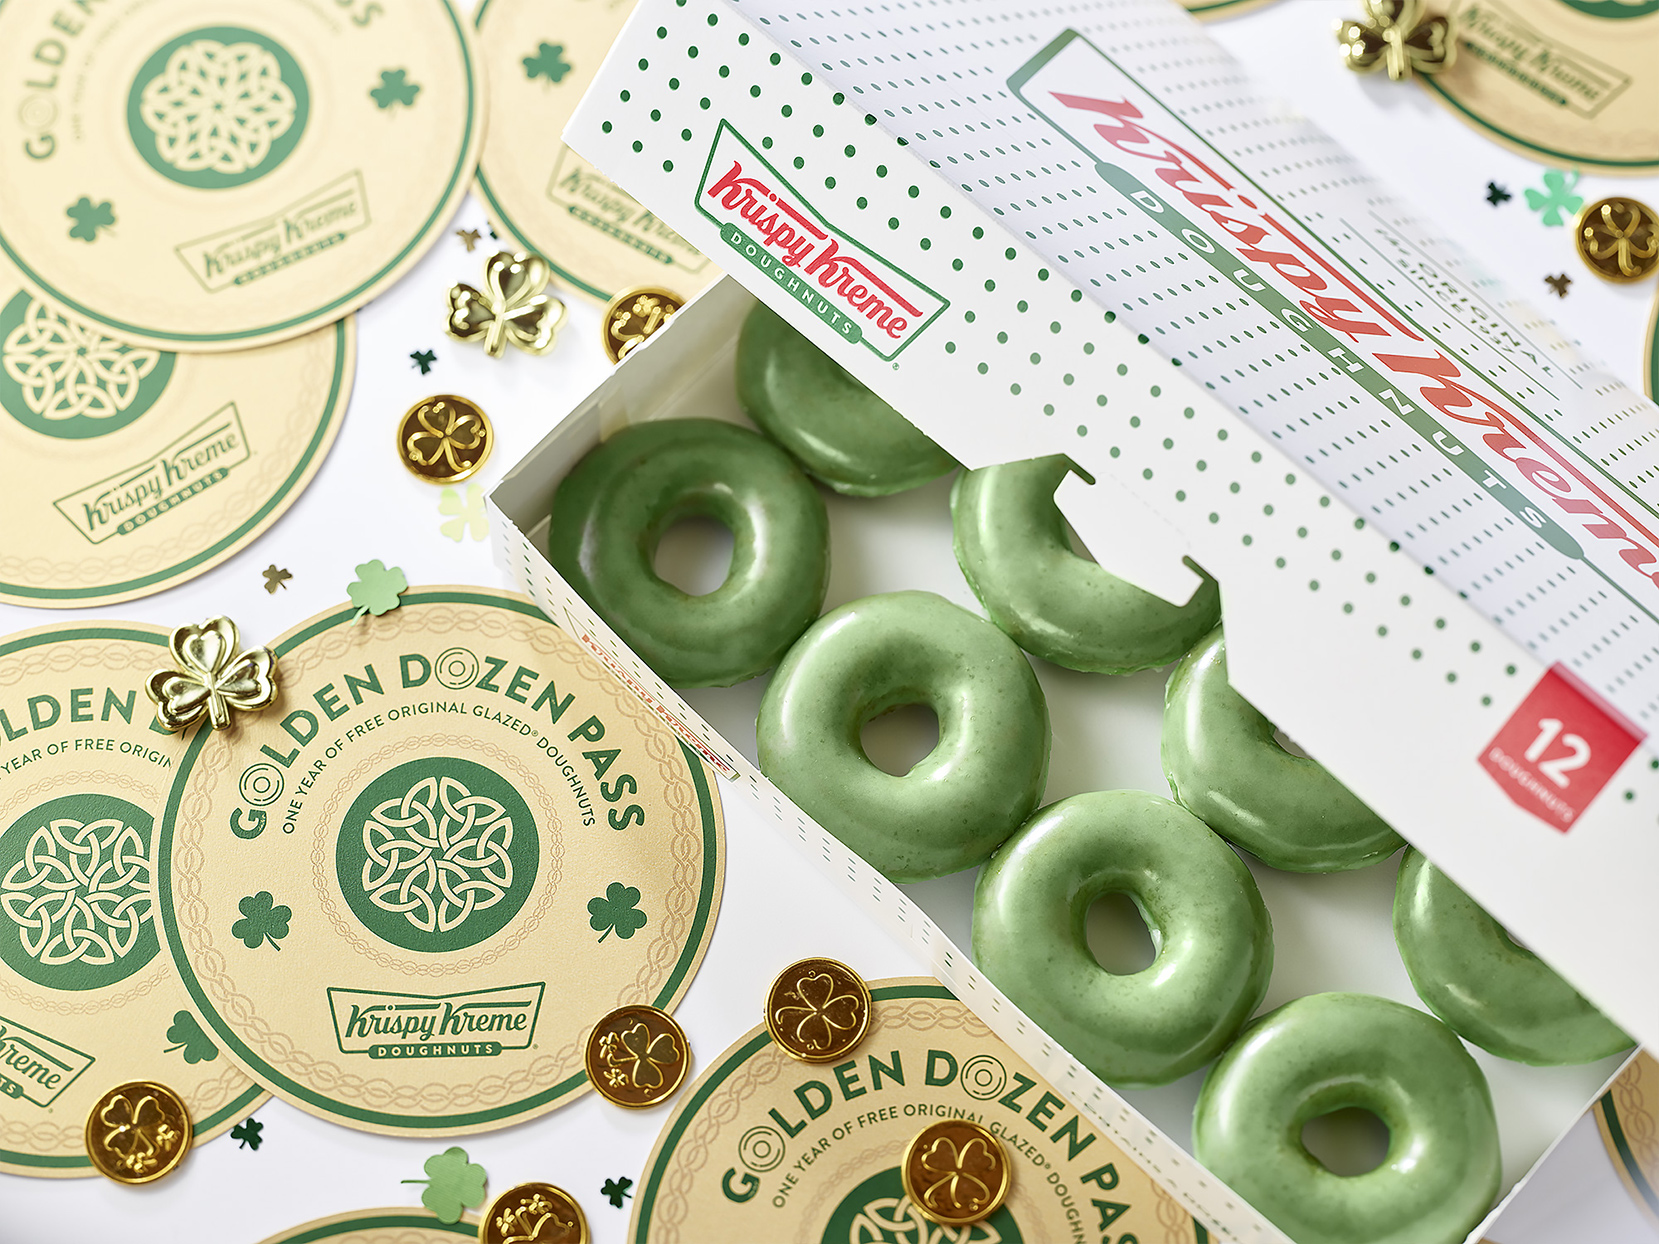 Krispy Kreme Is Turning Their Donuts Green to Celebrate St. Patrick's Day